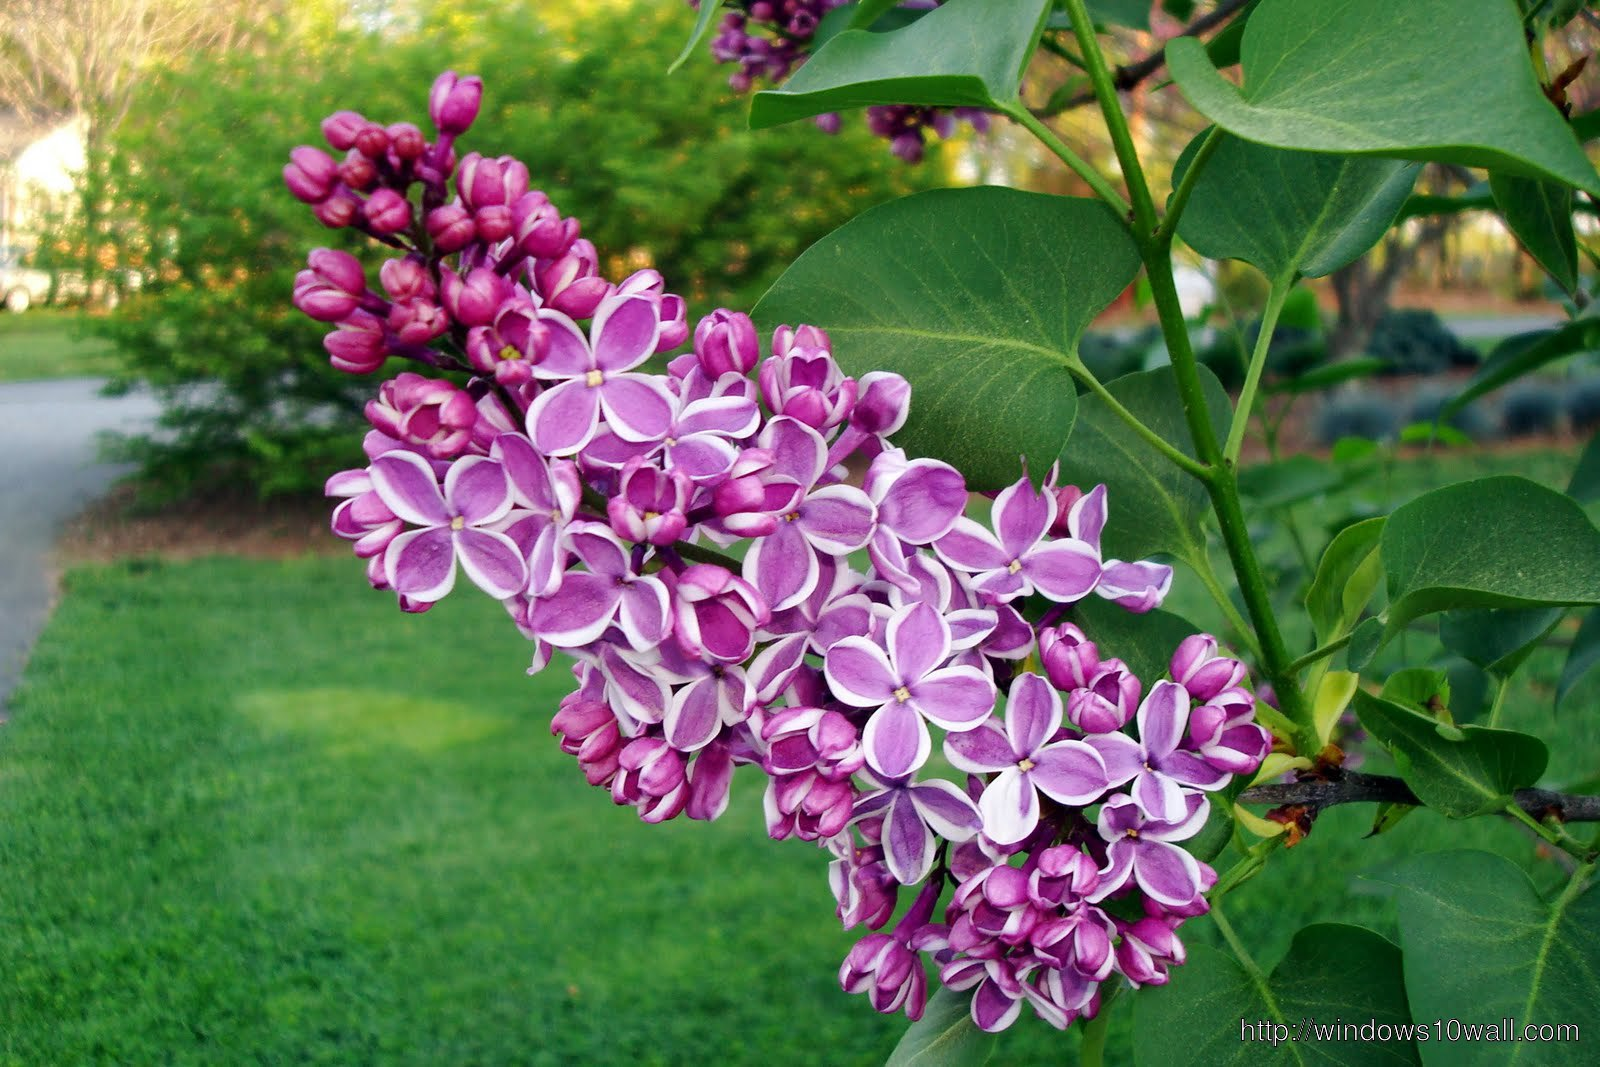 Nature Flowers lilac in Garden Wallpaper